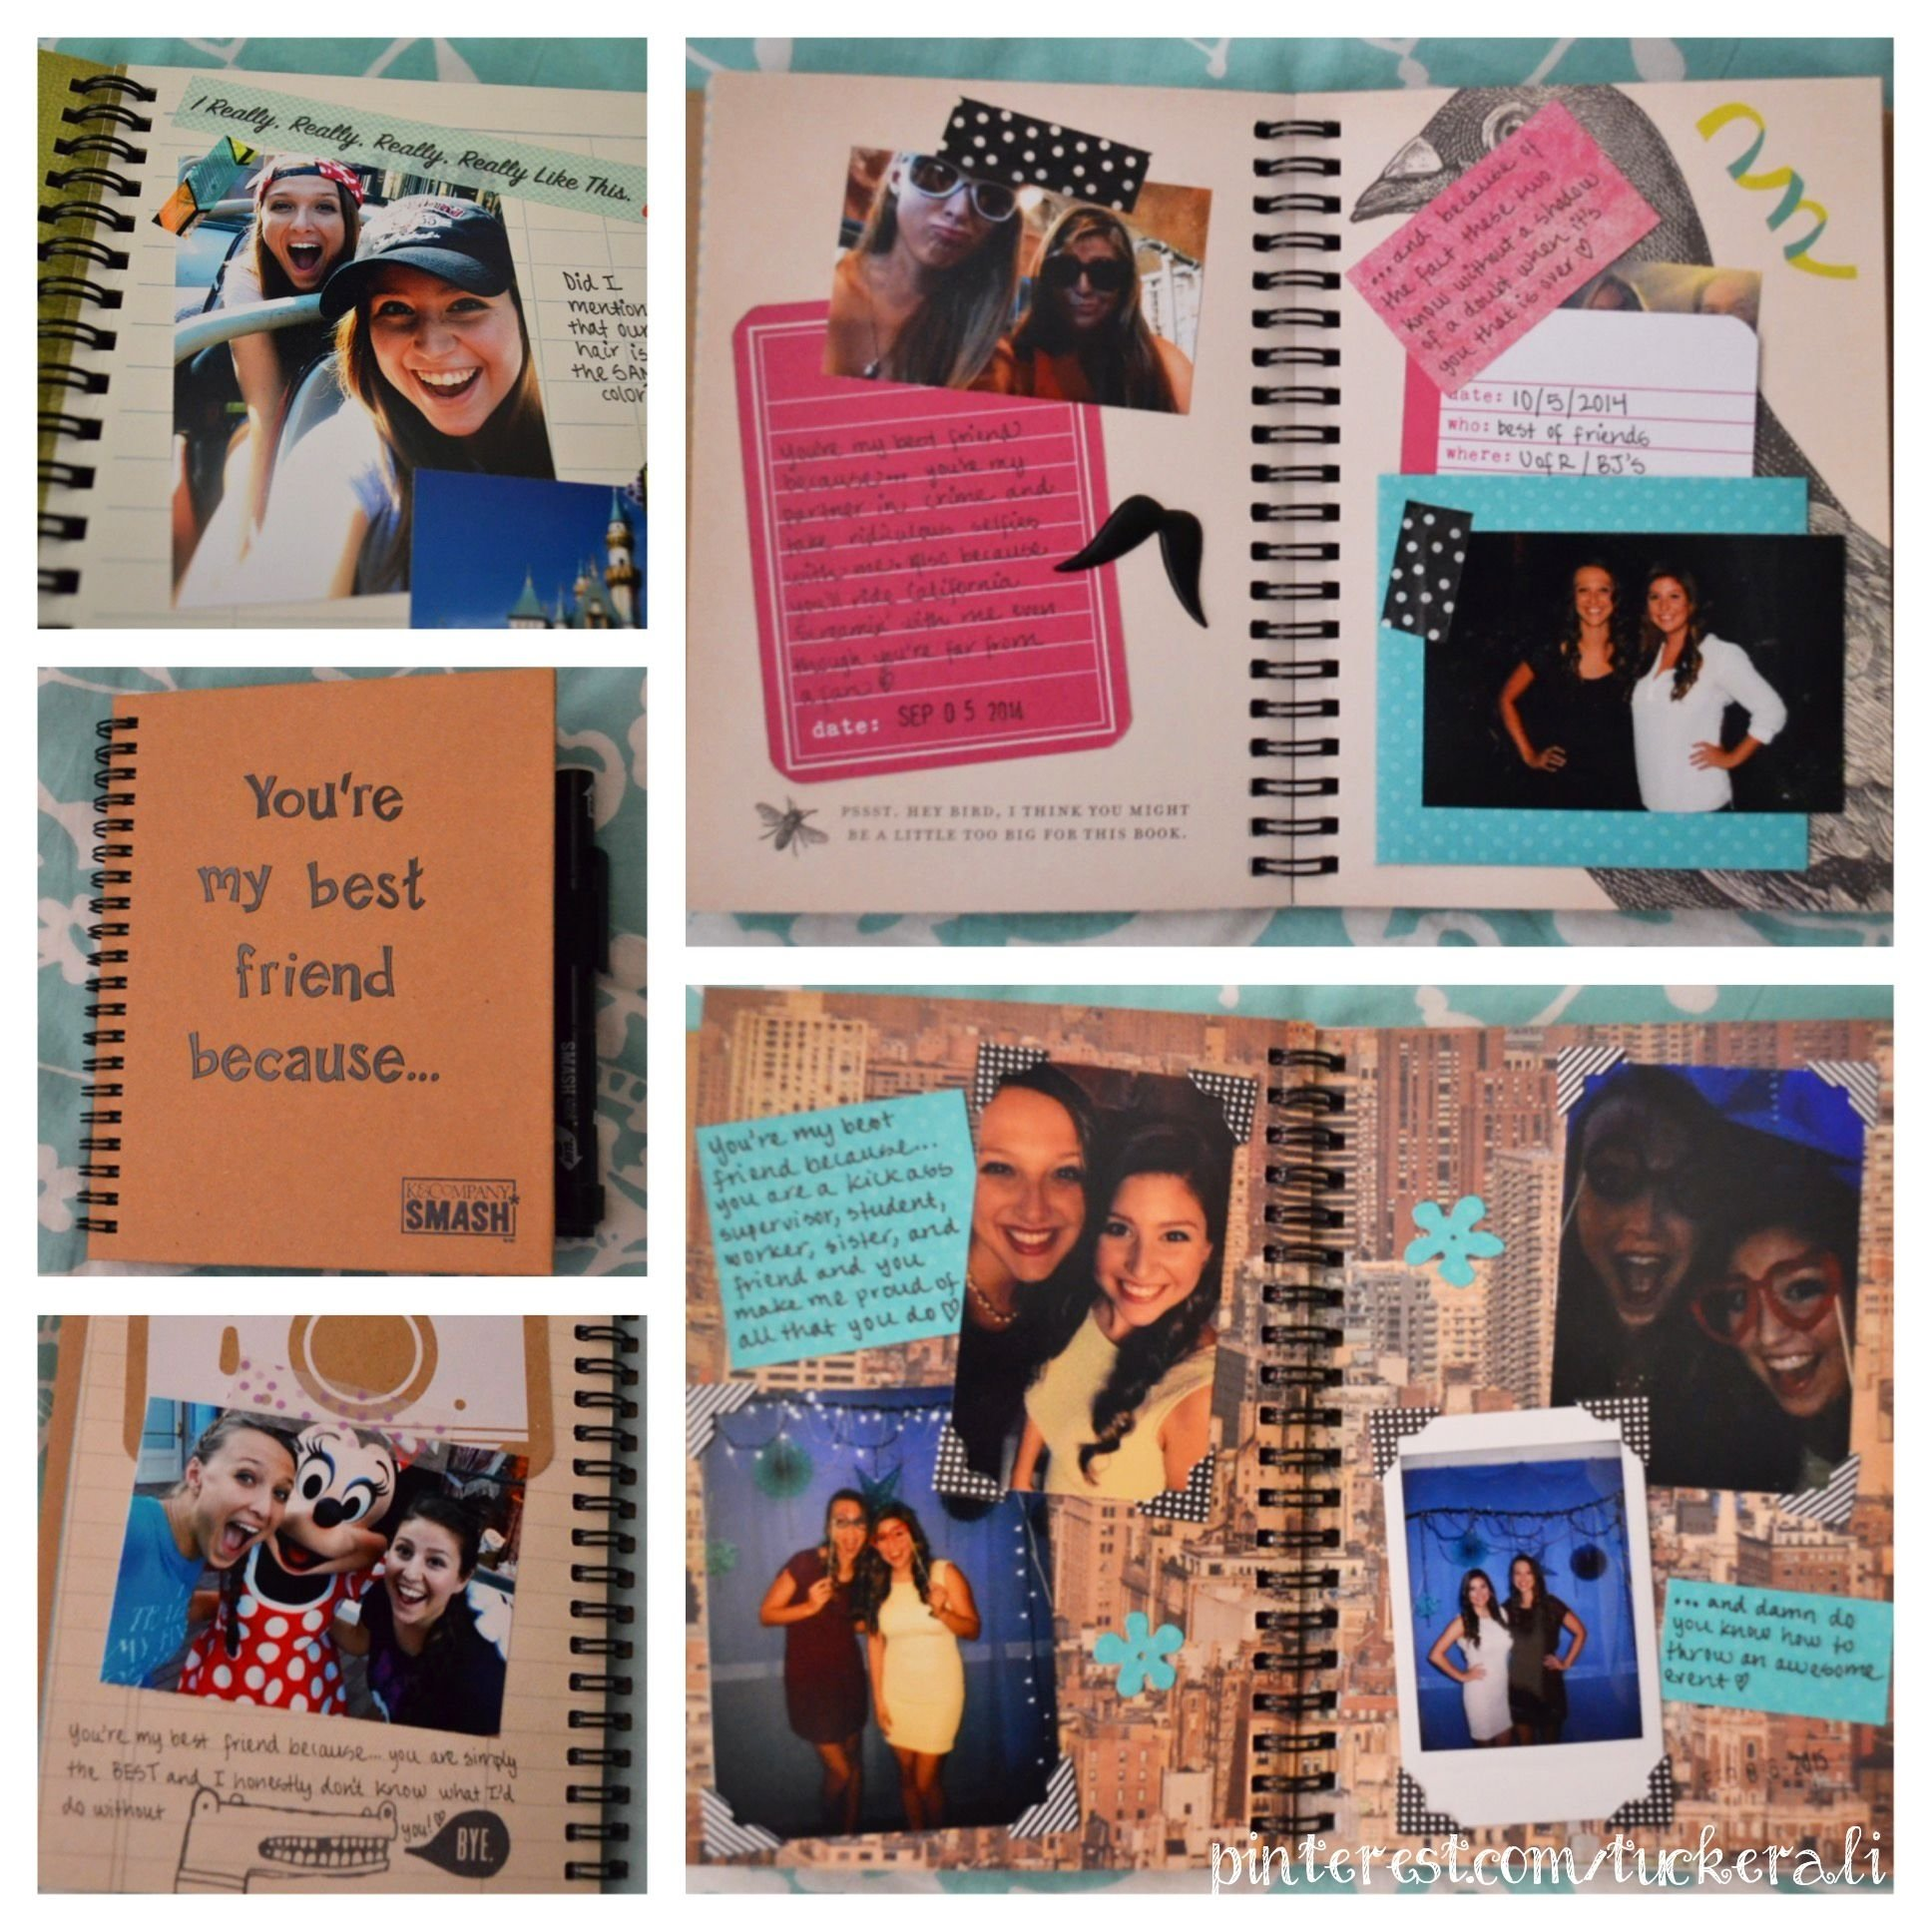 10 Trendy Graduation Gift Ideas For Friends diy best friend gift i made this book titled youre my best friend